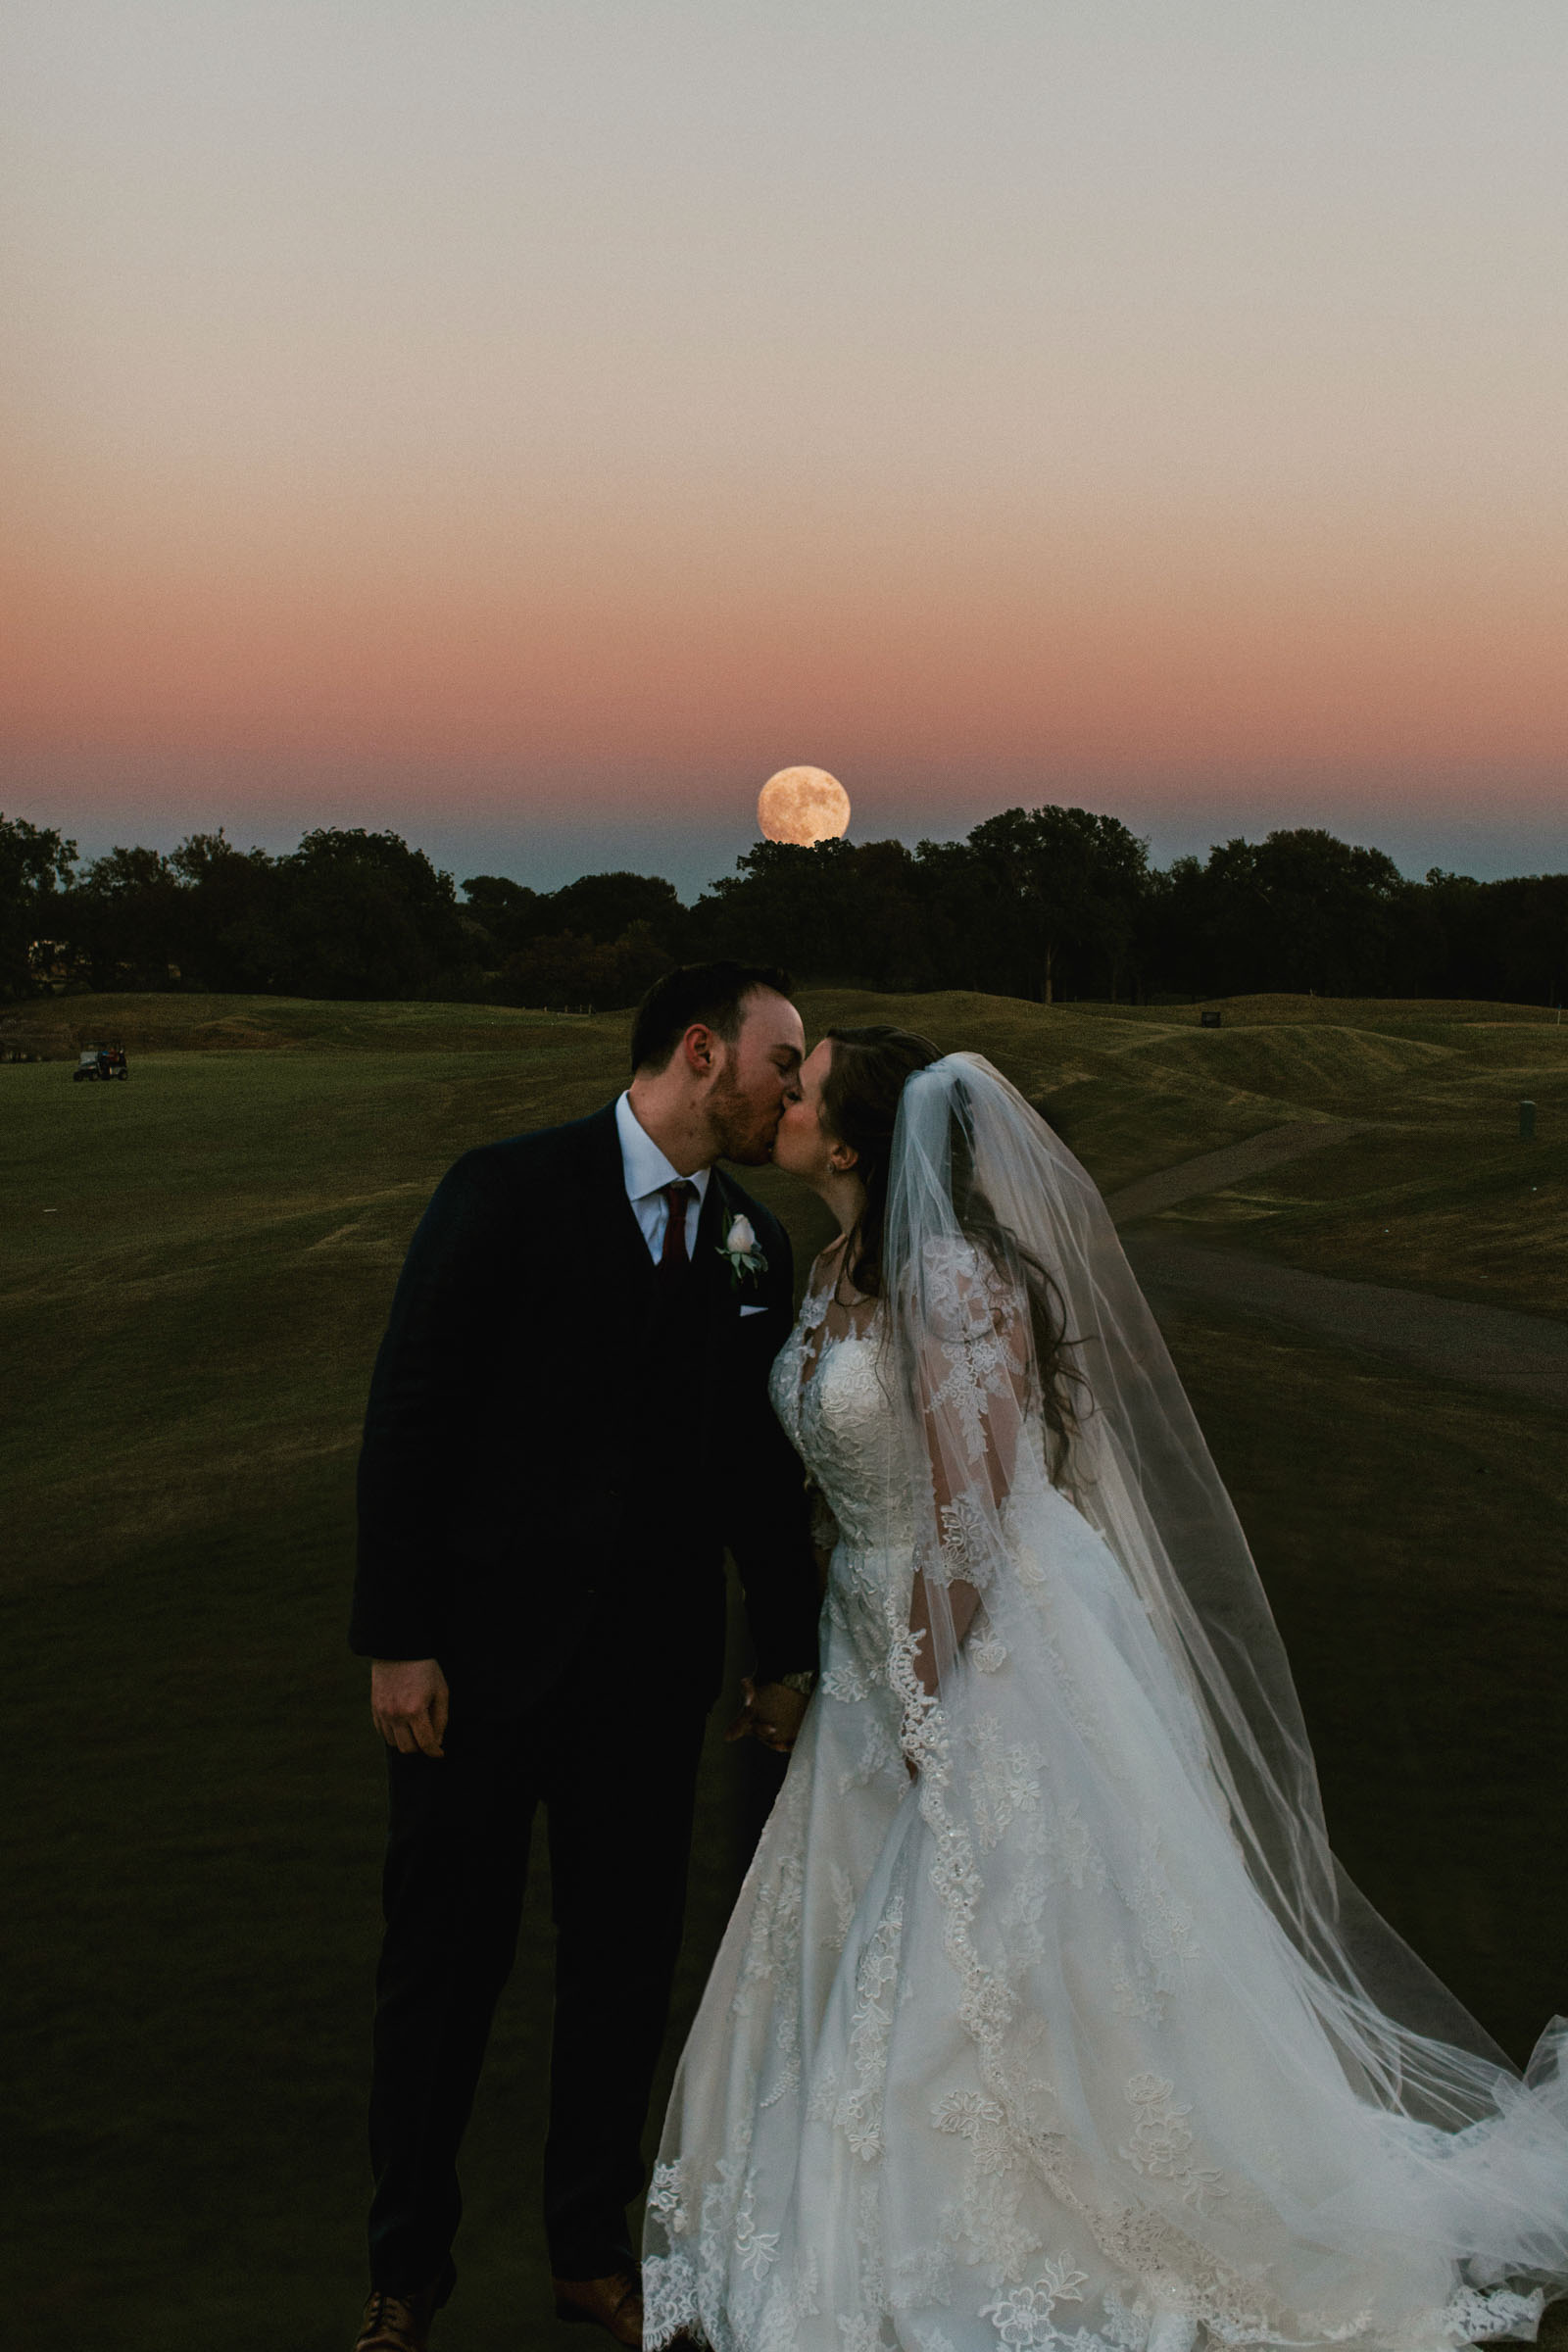 photo of bride and groom kissing as the moon rises